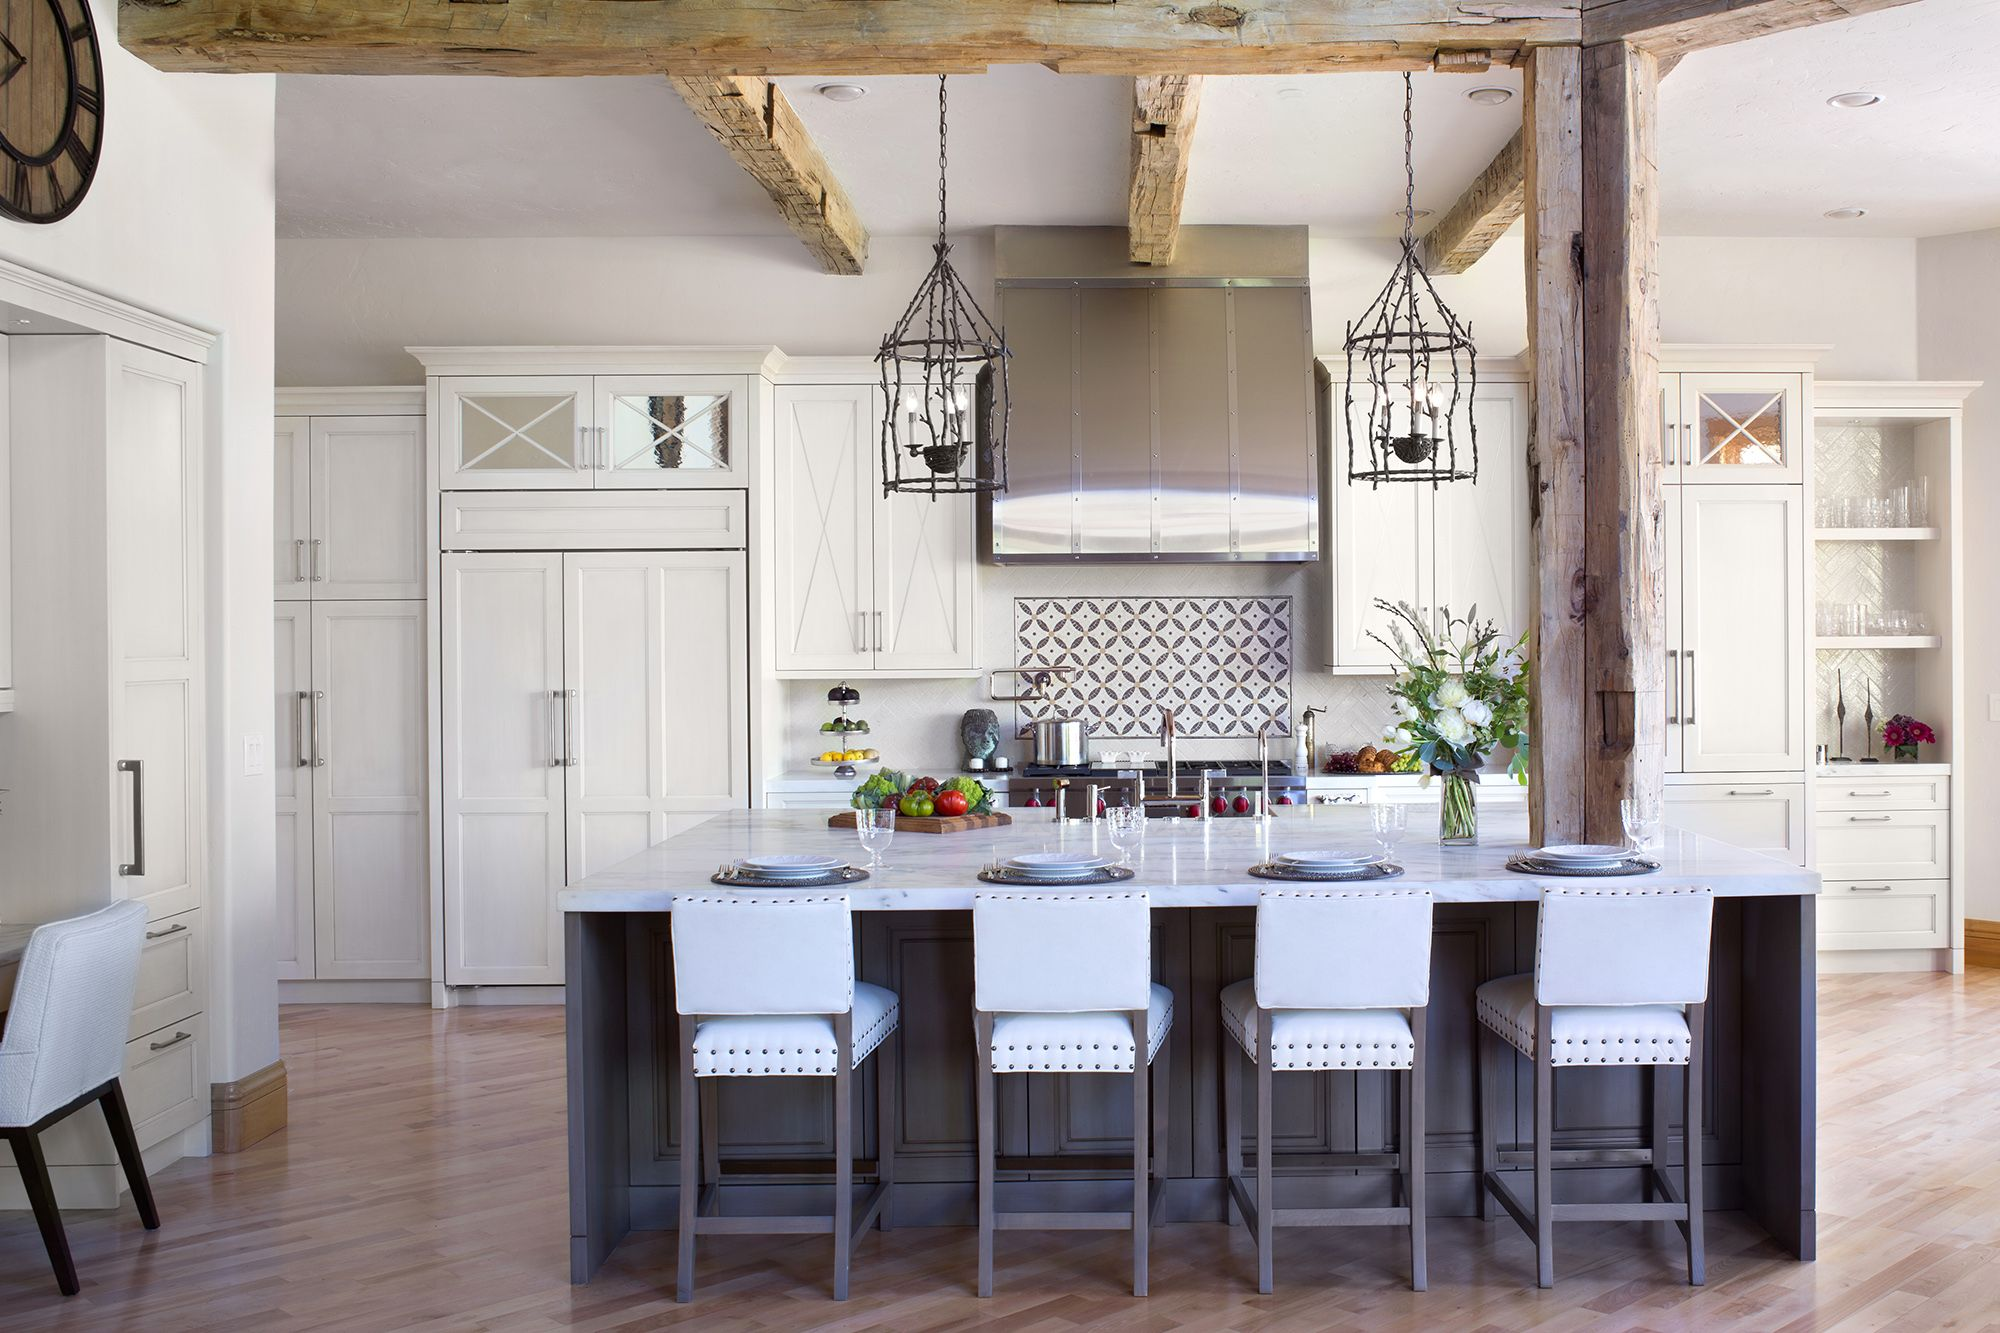 Patti Naumann Designer Spotlight William Ohs Consider This Company To Build Dining Ro In 2020 White Kitchen Remodeling Kitchen Design Transitional Kitchen Design